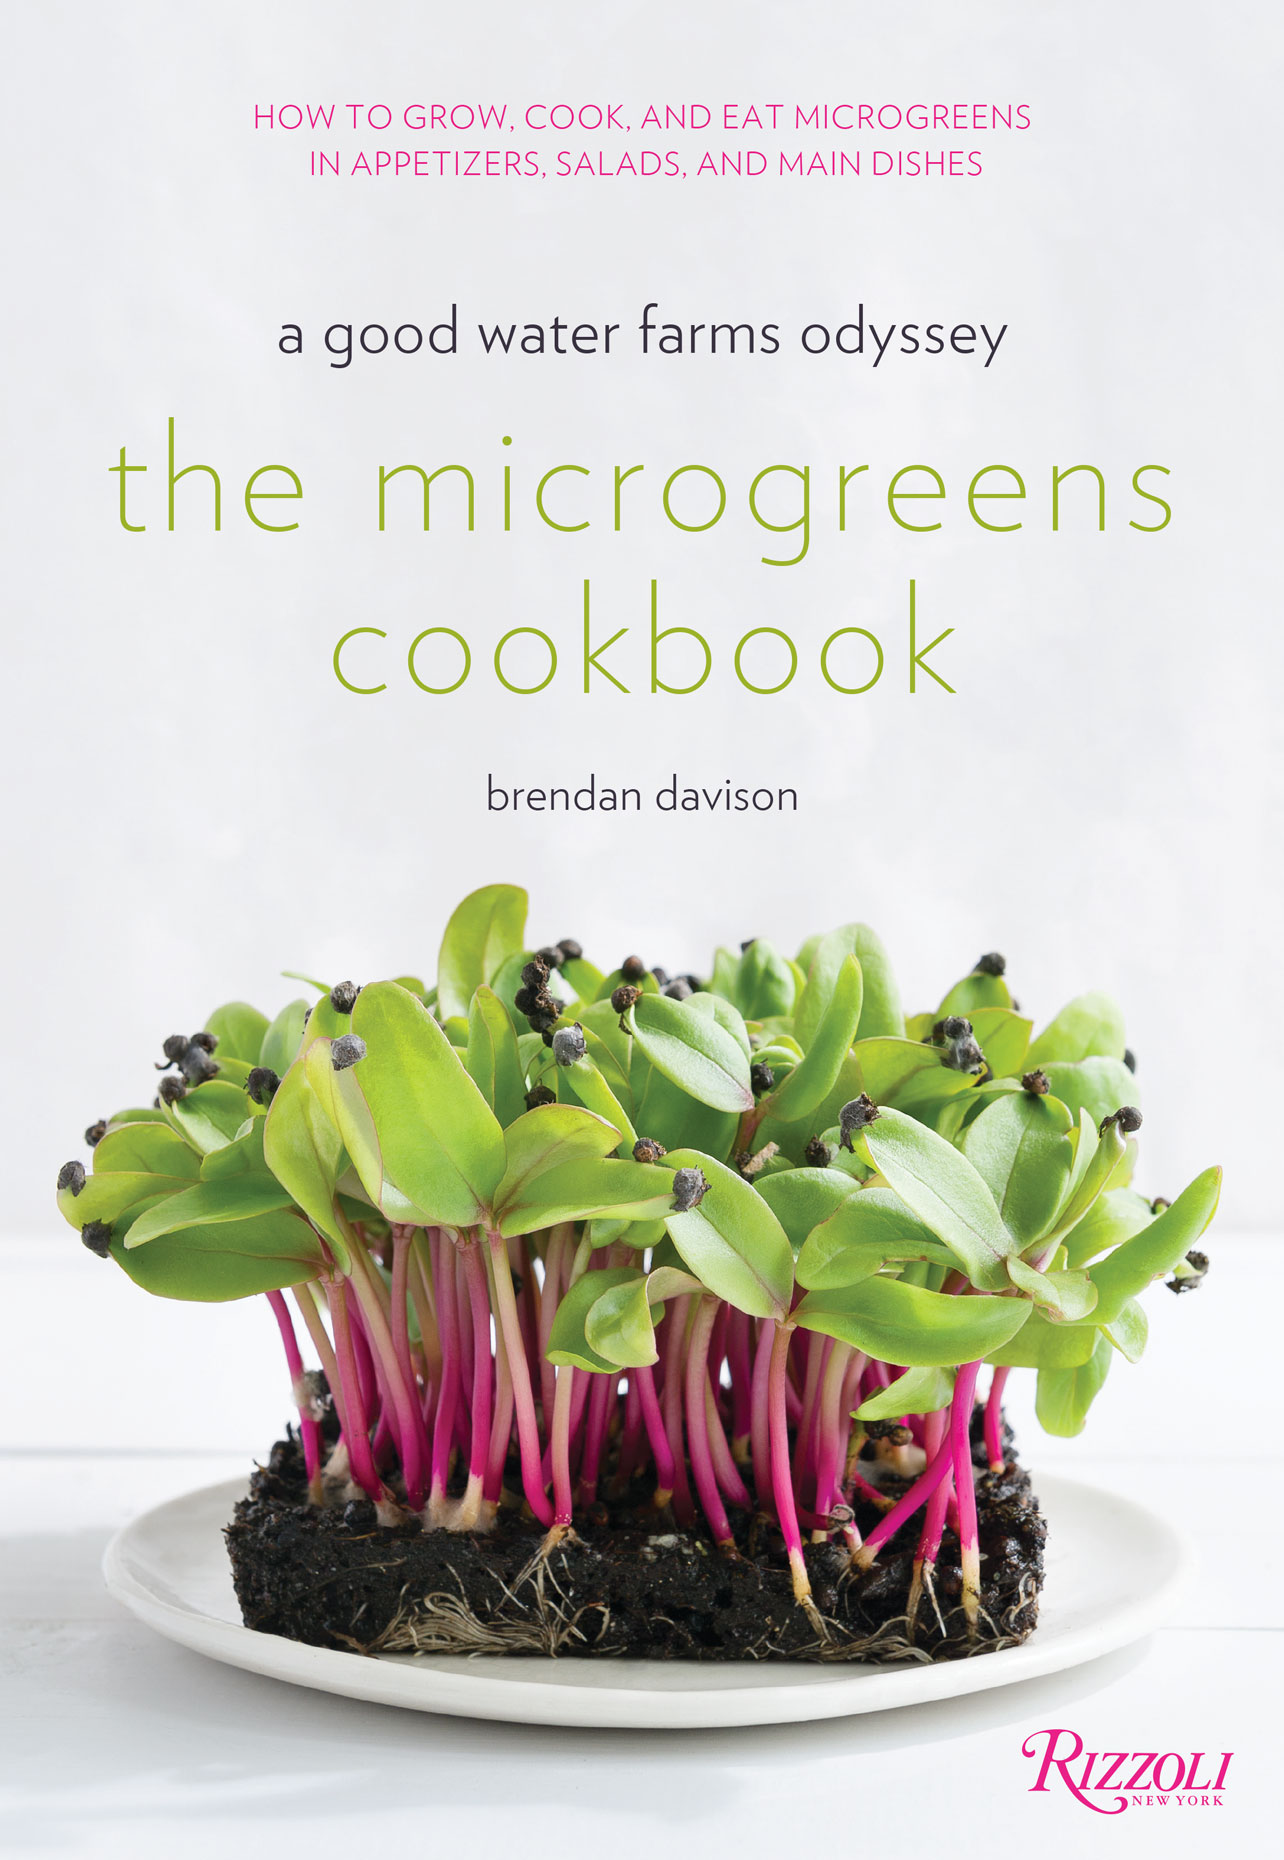 NYC-Food-Photographer-MicrogreensCookbookCover